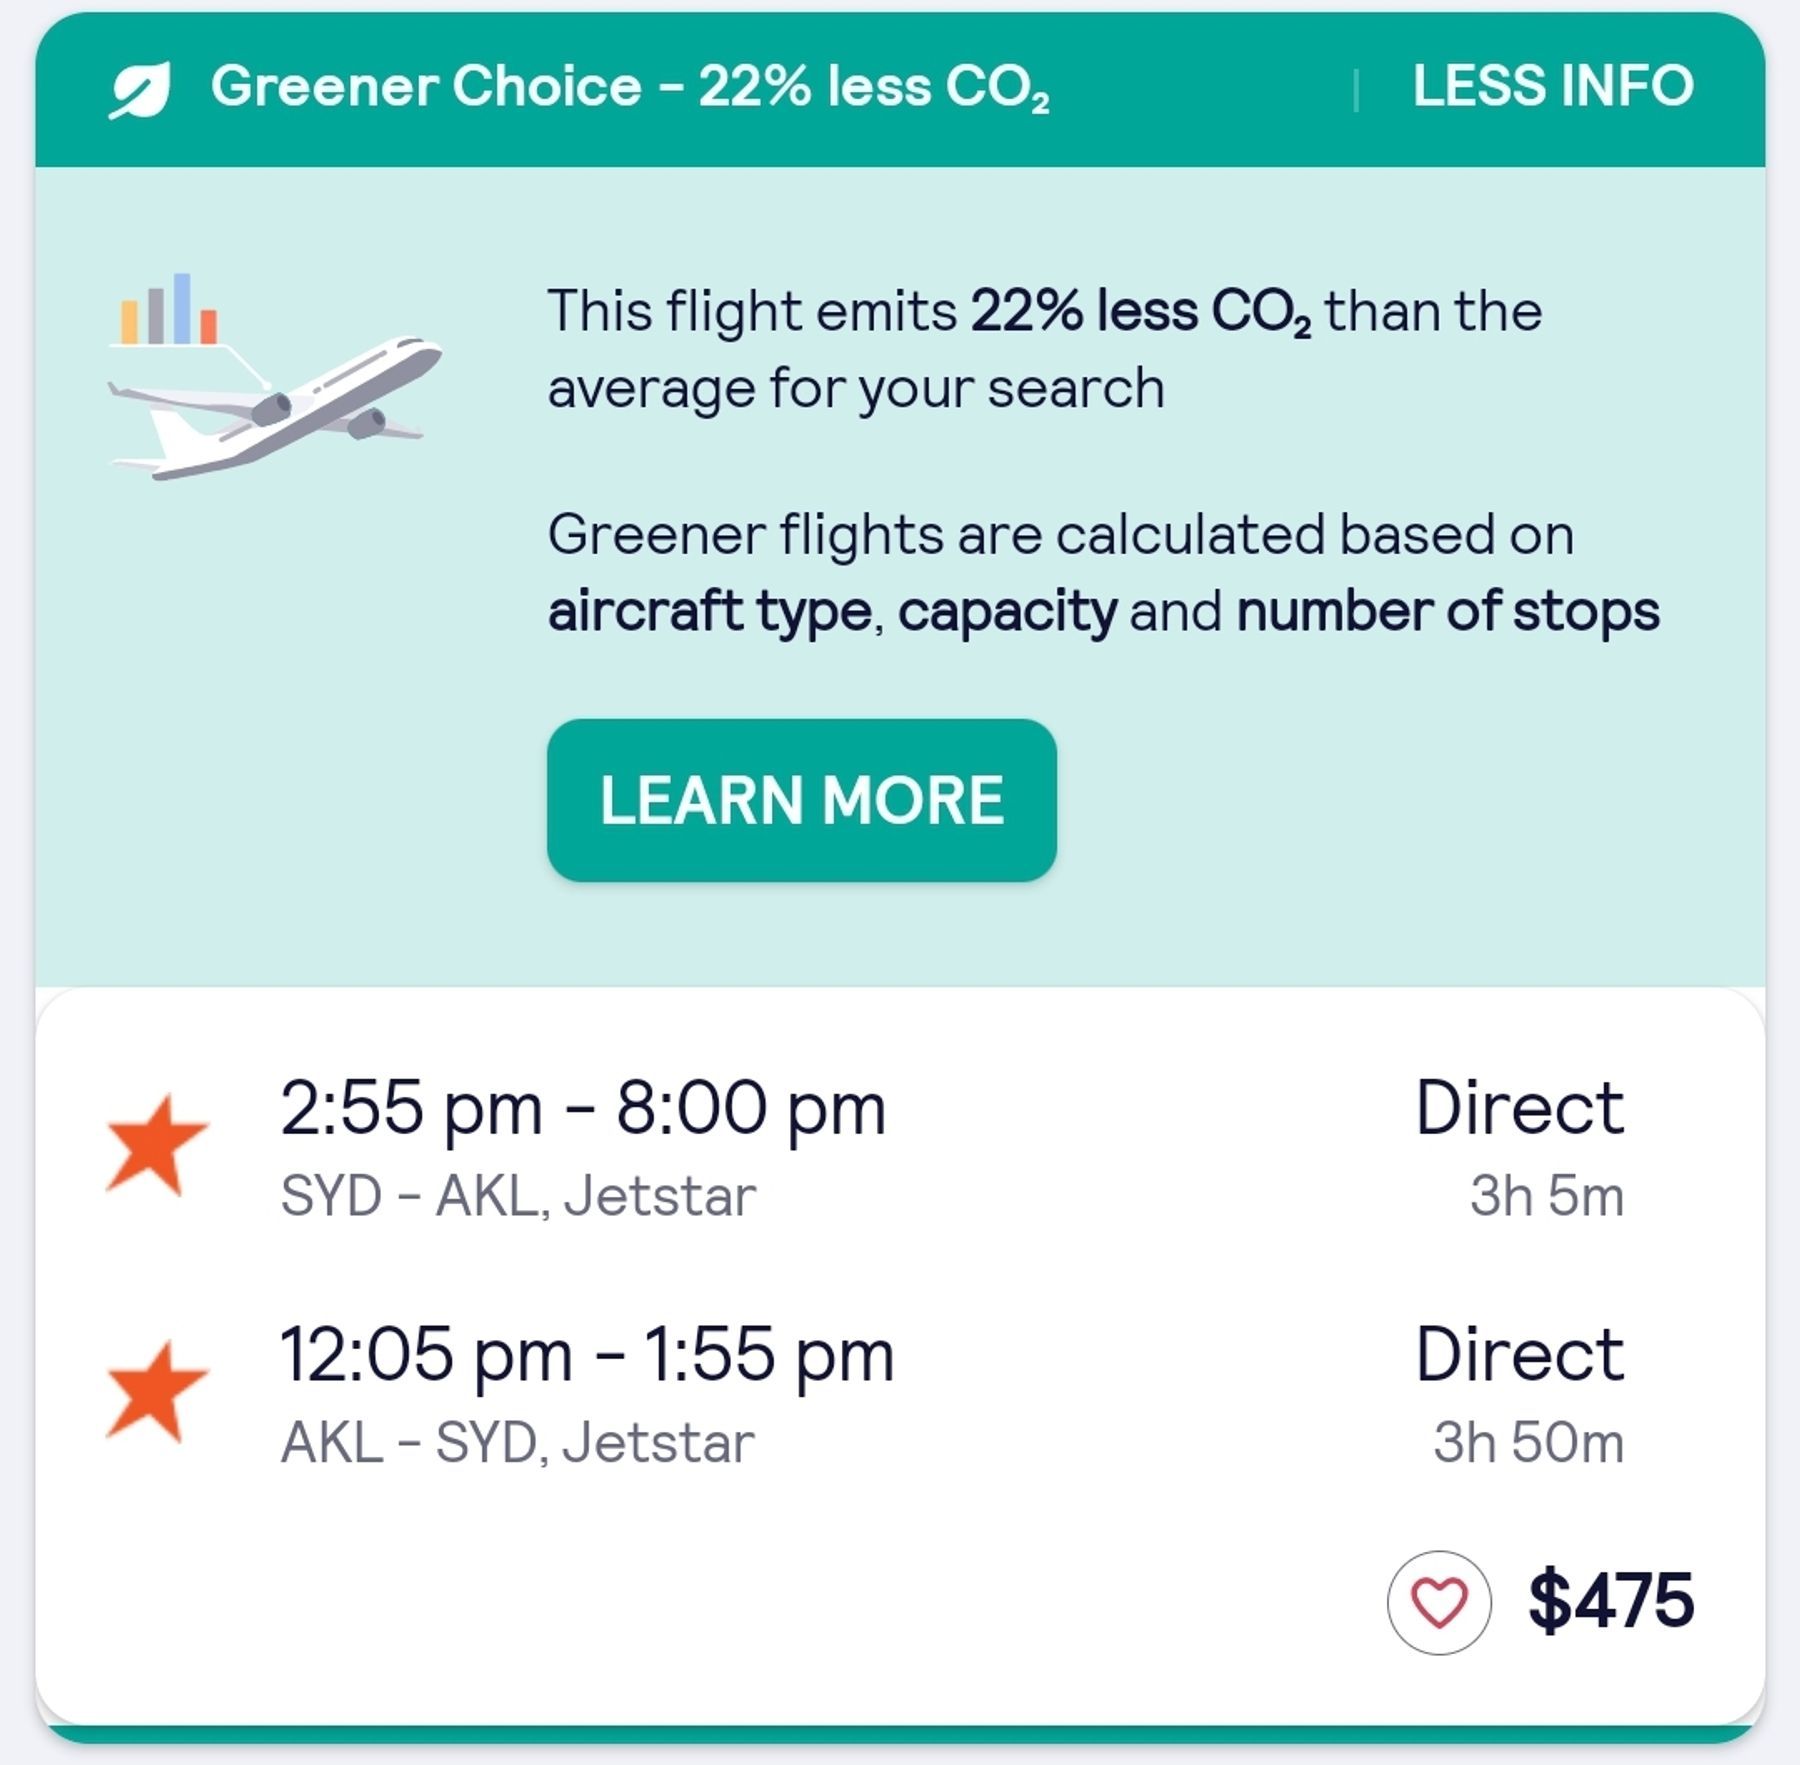 Greener Choice label shows you which flights omit less CO2.